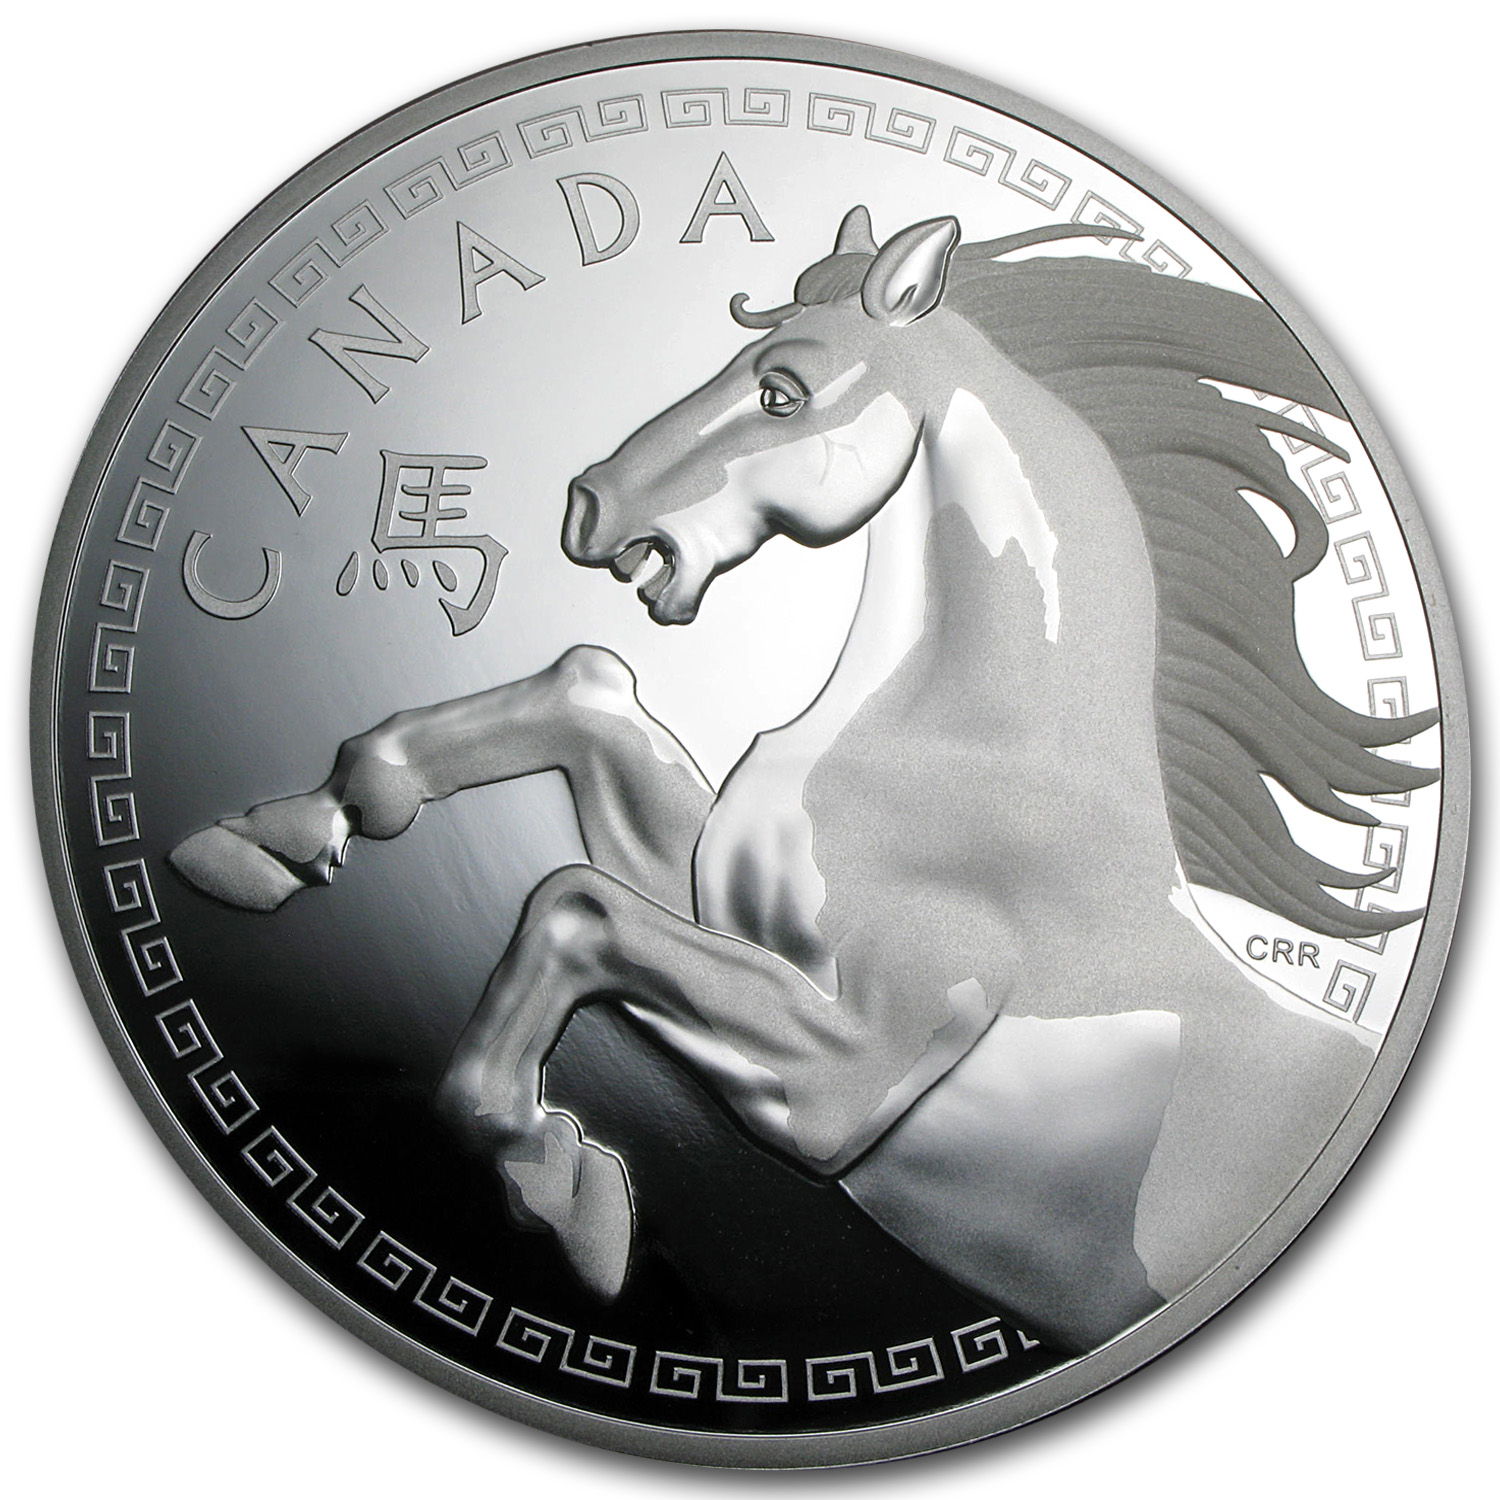 2014 1 Kilo Silver Canadian $250 Lunar Year of the Horse